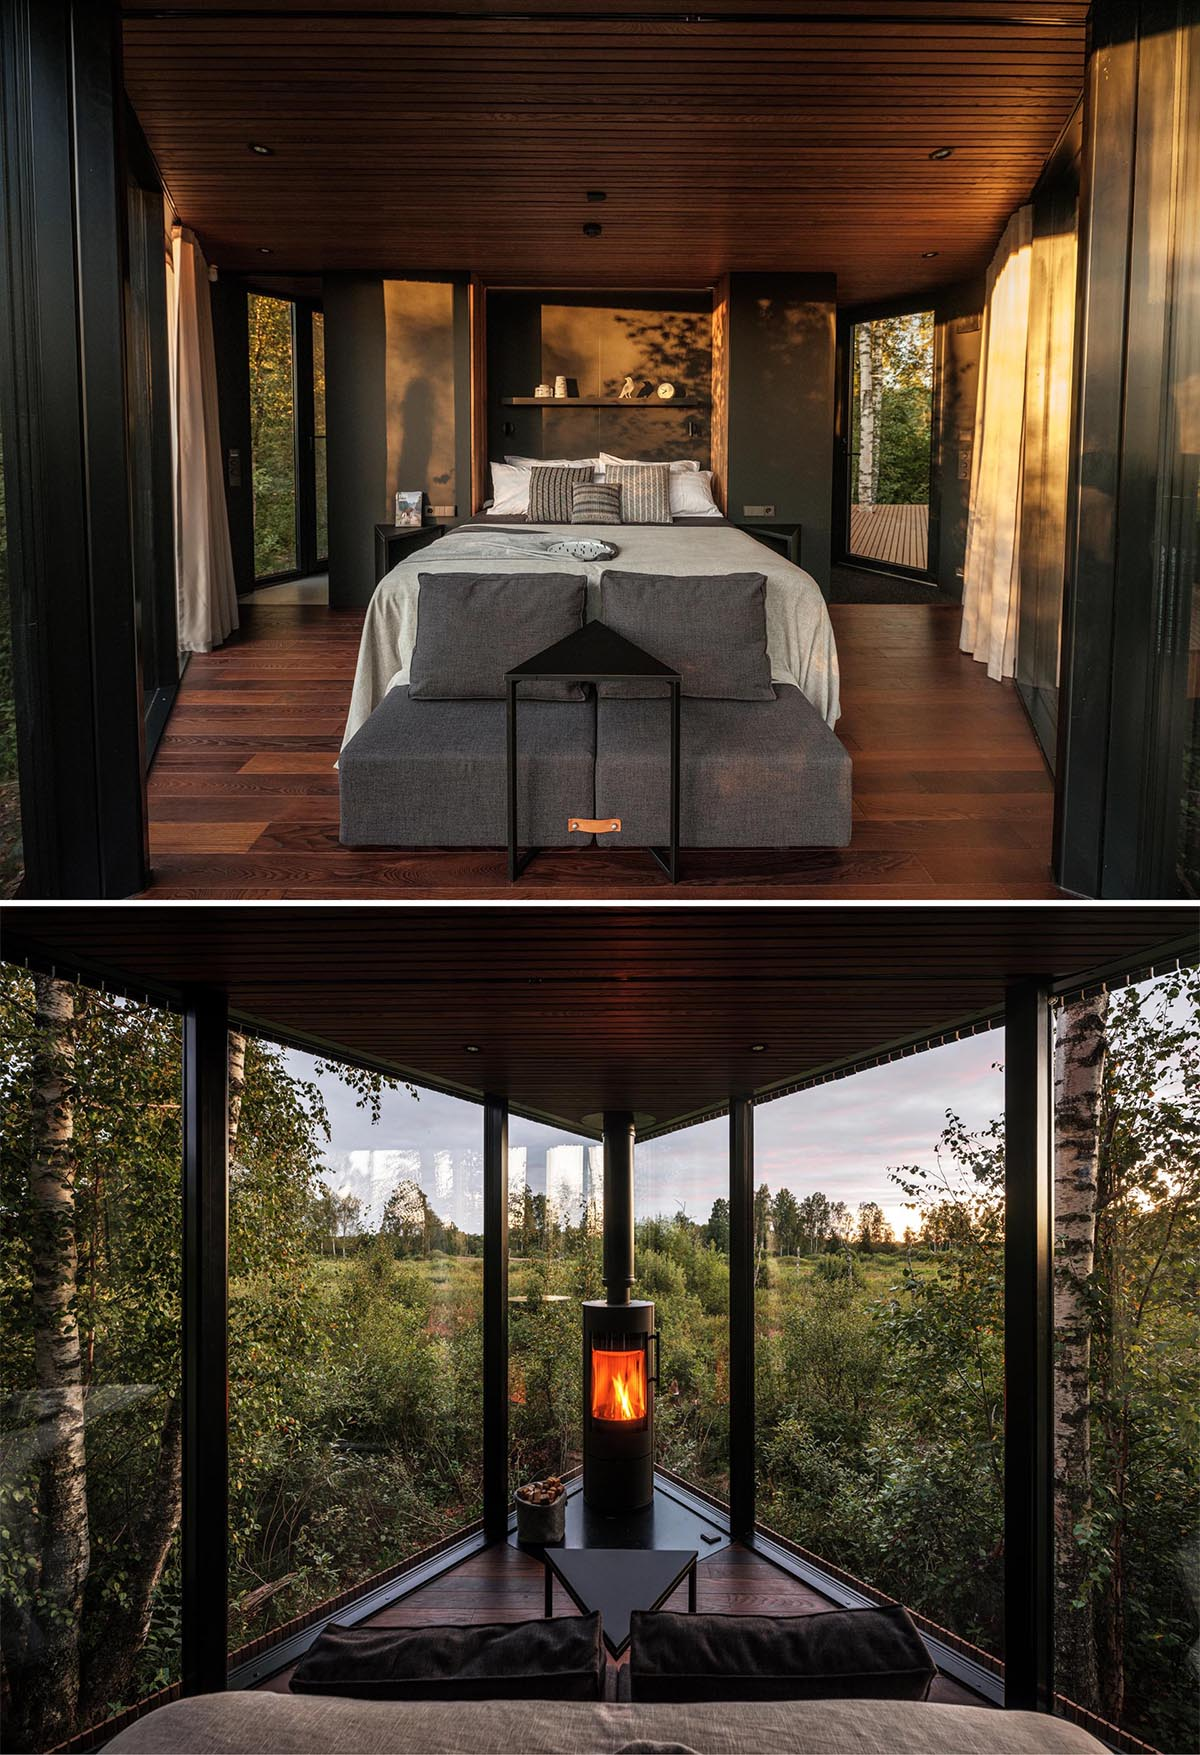 A modern cabin includes a triangular bedroom with a small sitting area at the end of the bed, which faces the fireplace and the view.